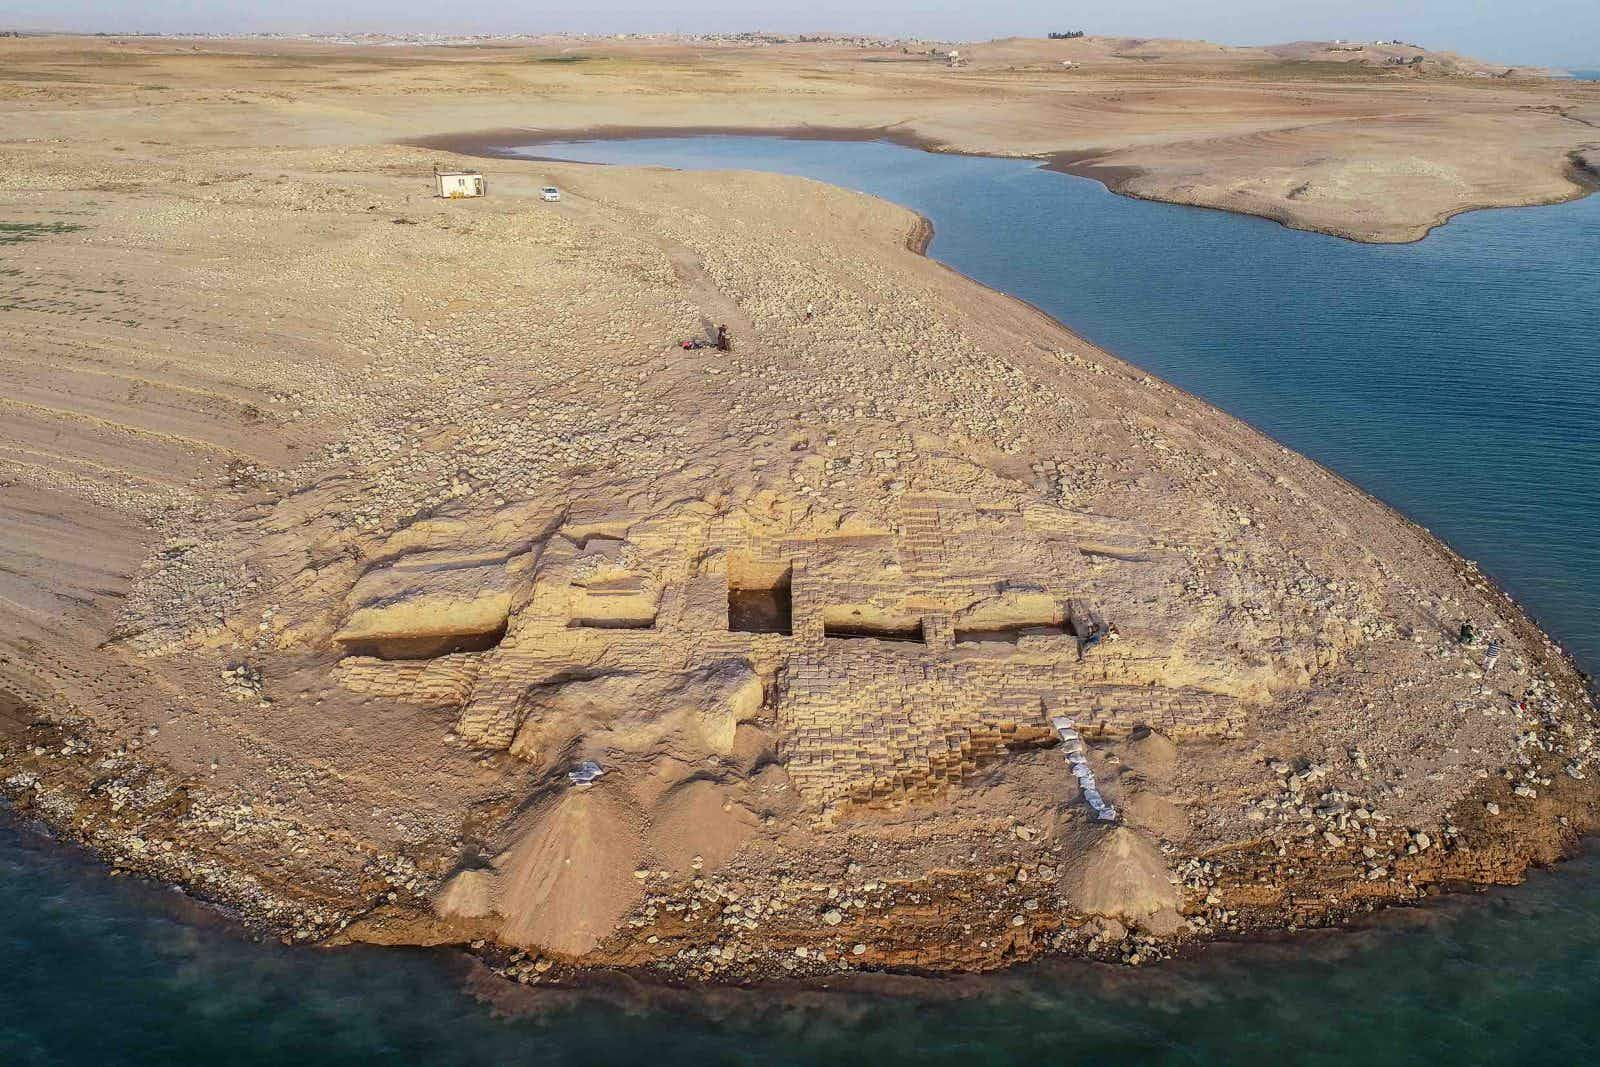 Mysterious 3400-year-old palace emerges from the Tigris River during drought